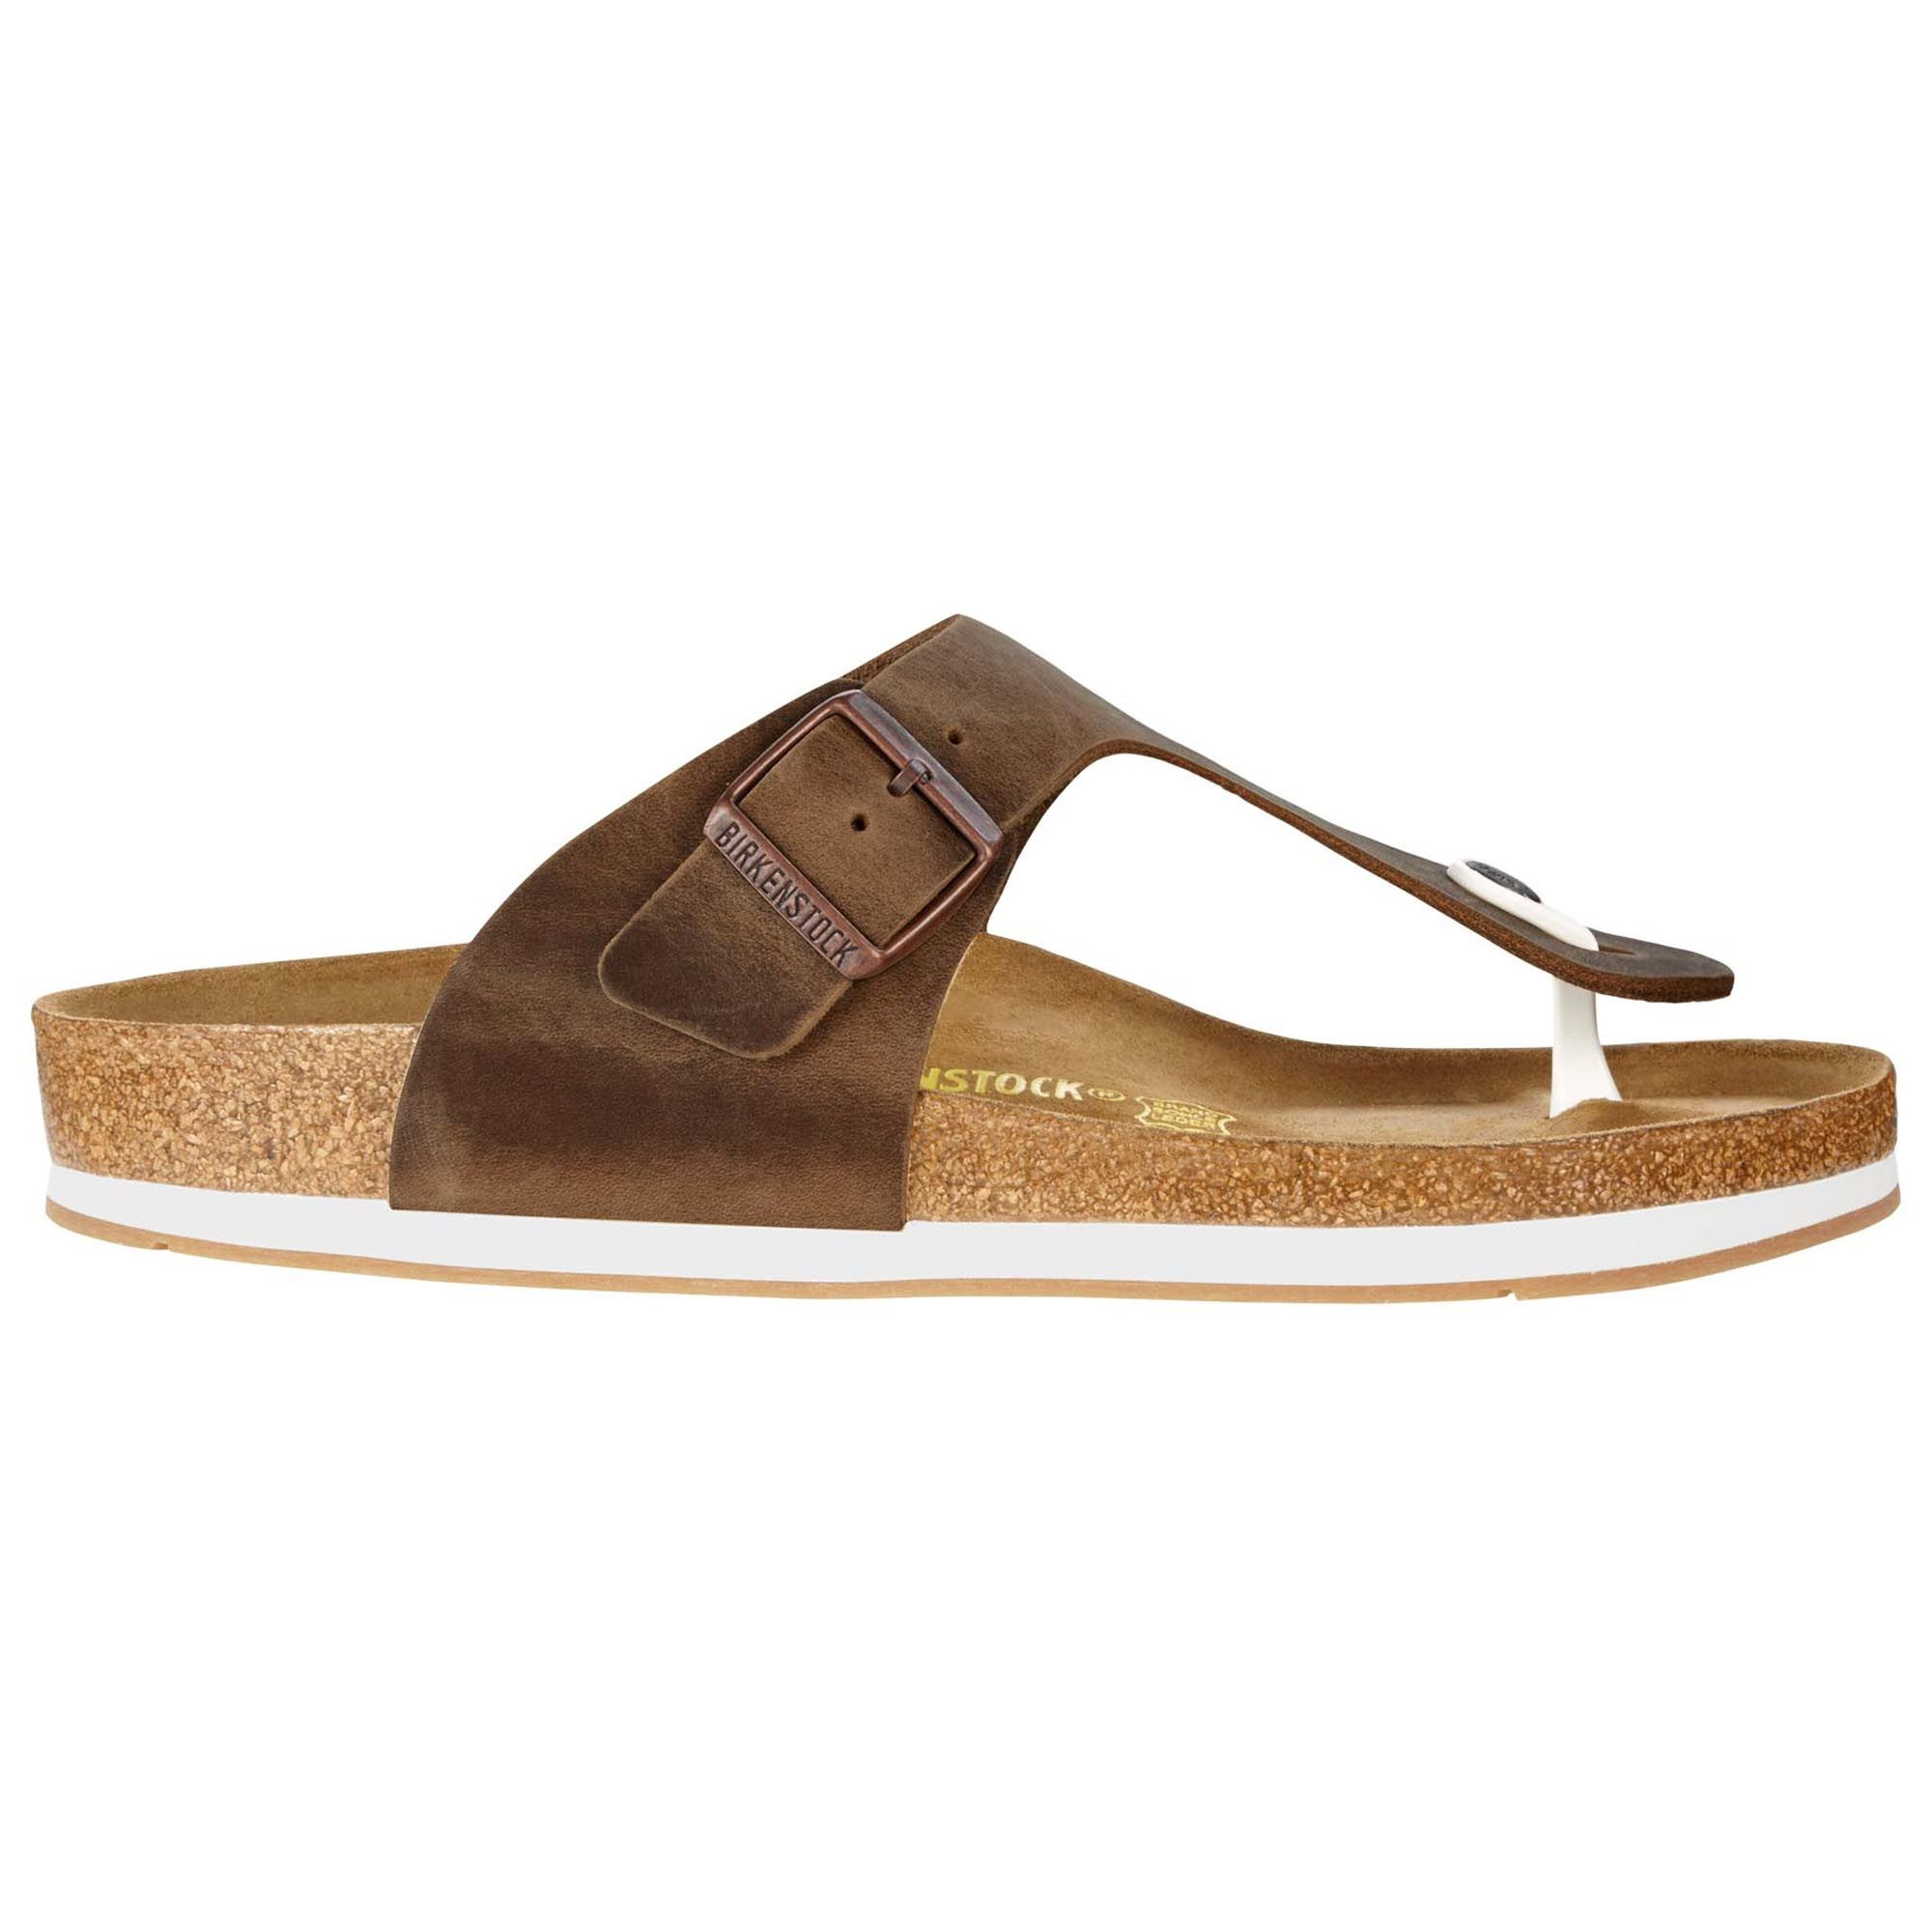 d82c8c72798 Ramses Sport Oiled Leather Tobacco Brown